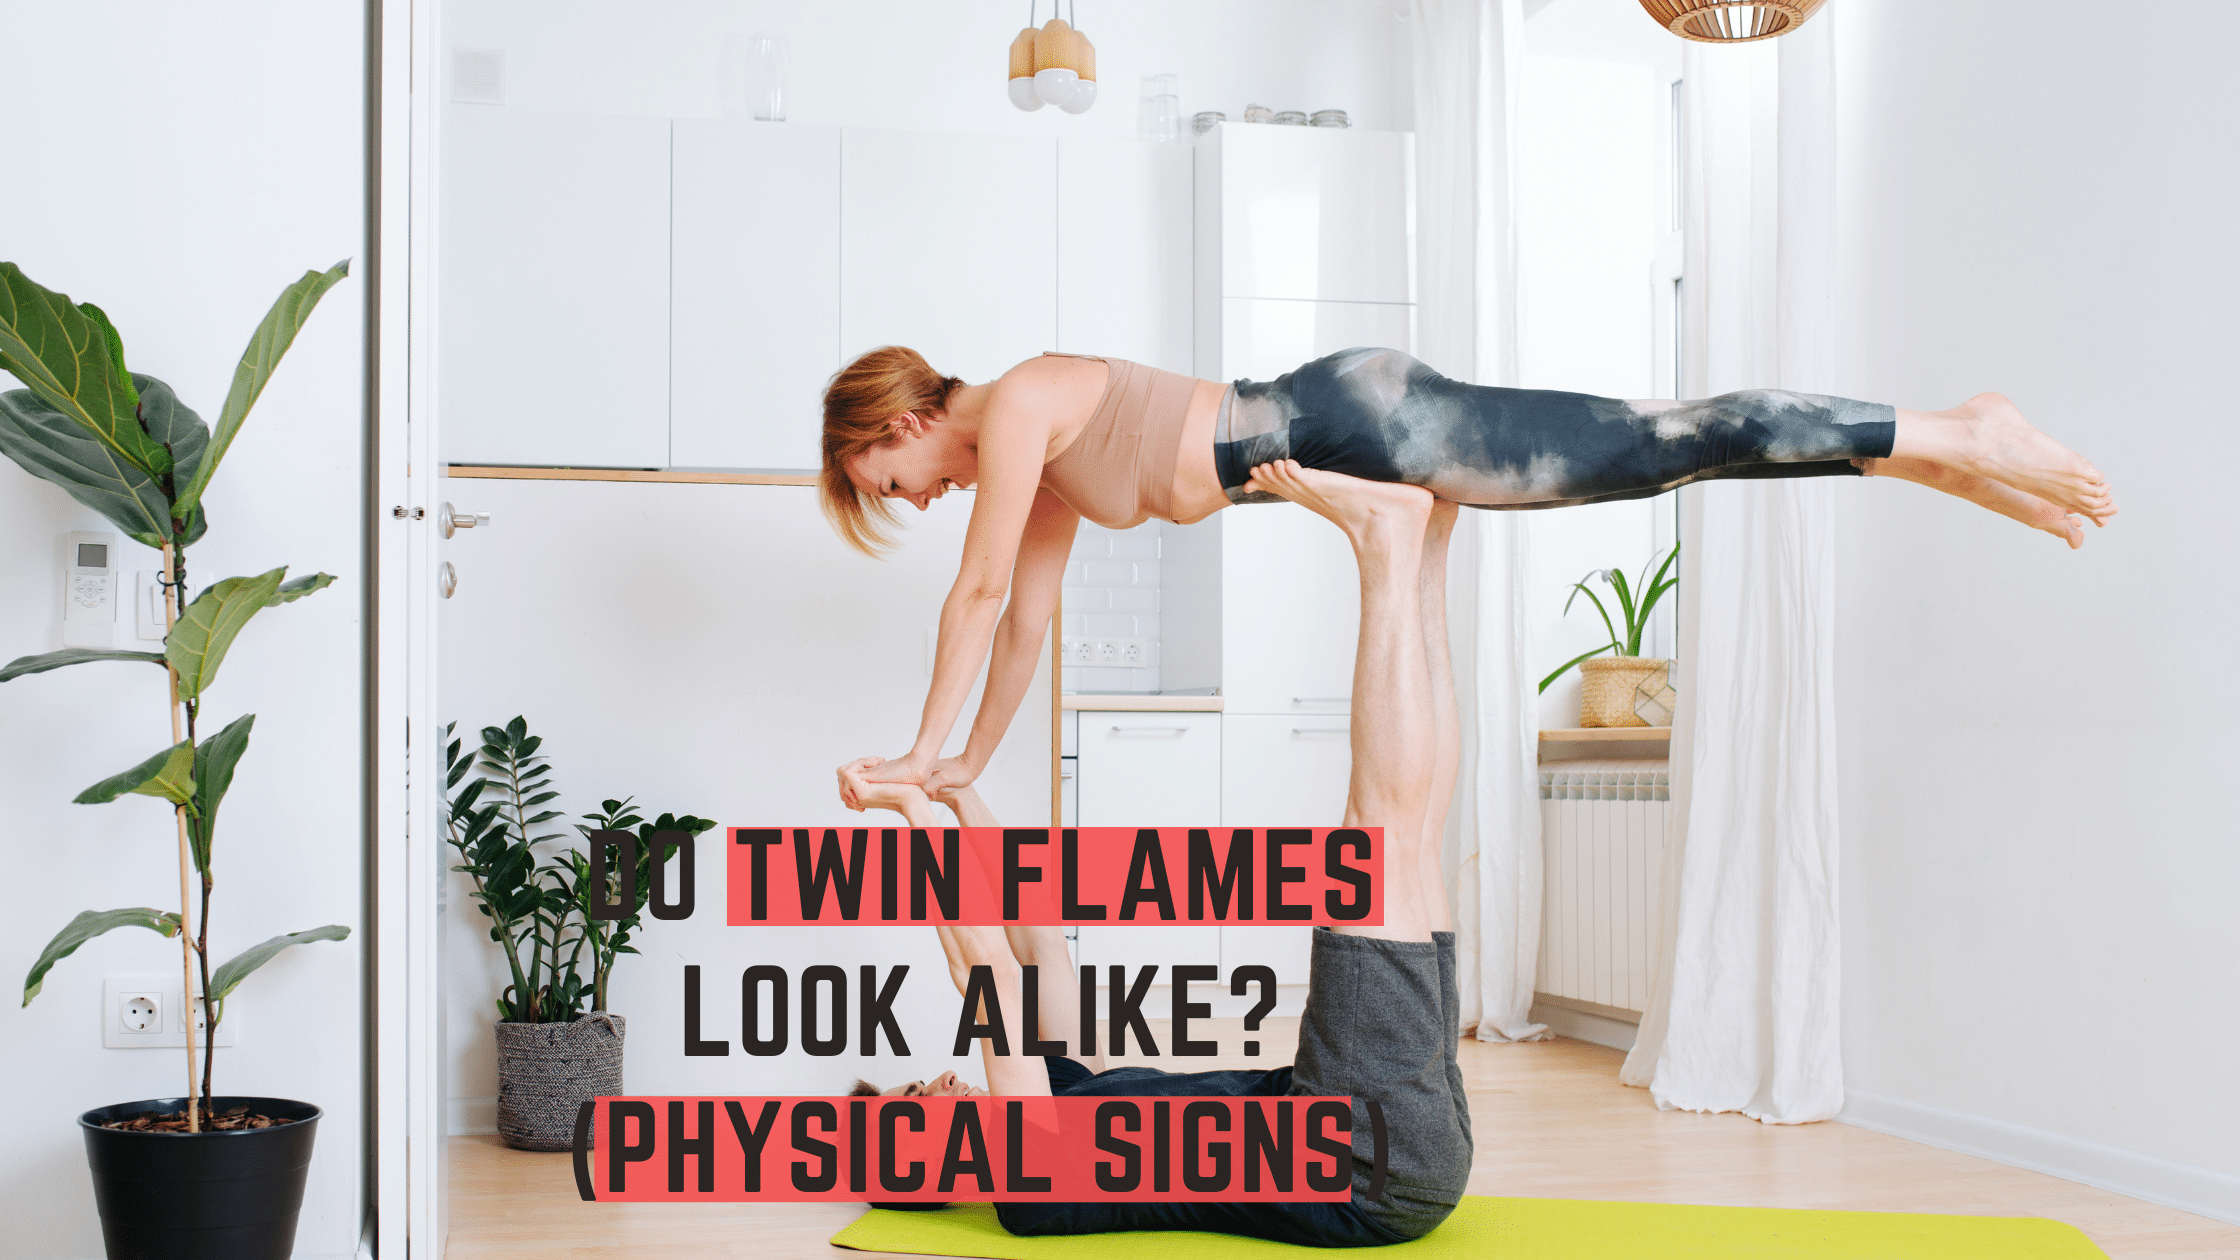 Do Twin Flames Look Alike?